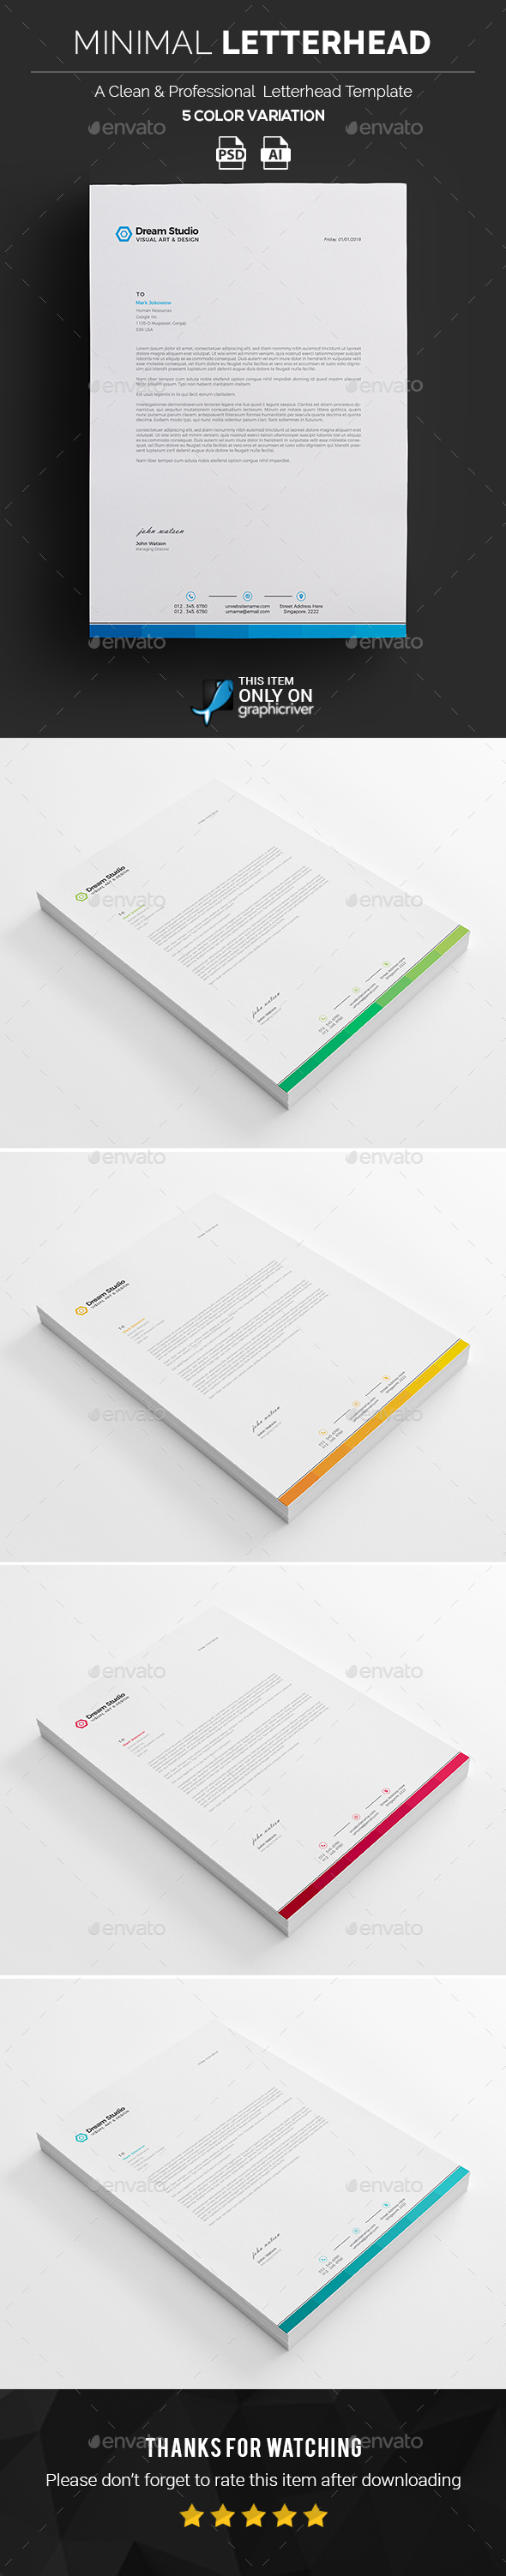 Letterhead template graphics designs templates spiritdancerdesigns Choice Image